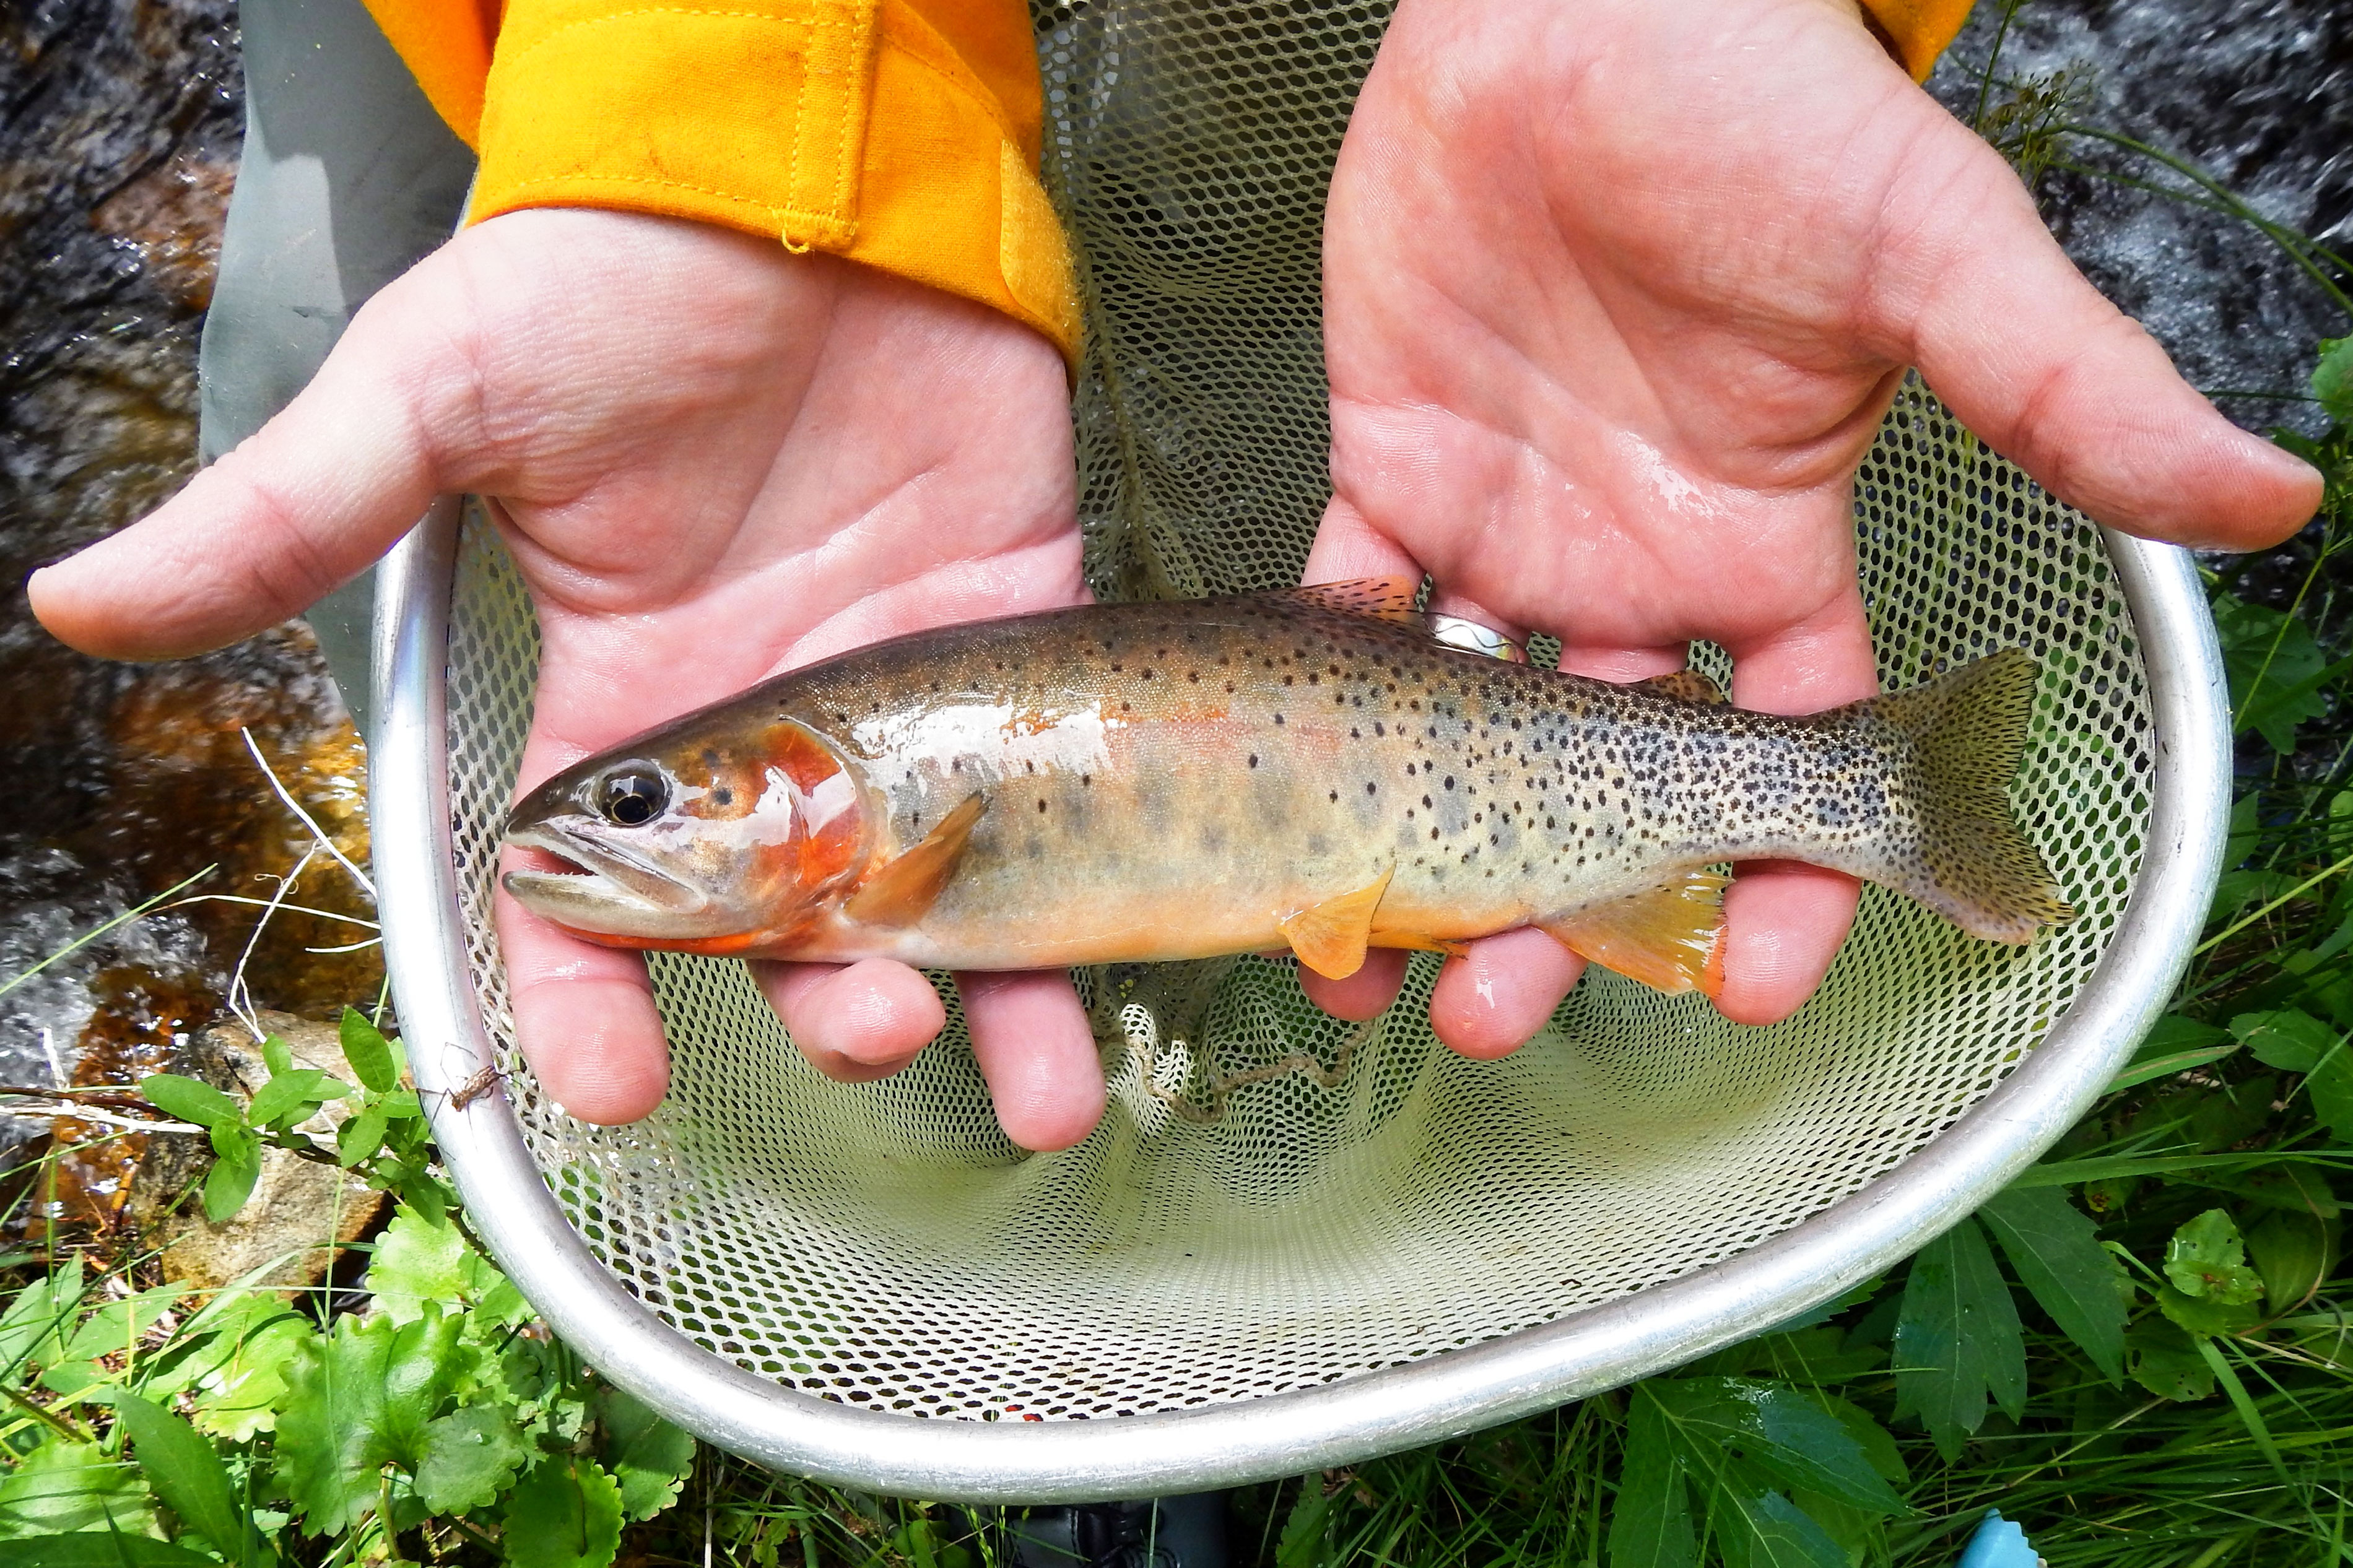 <p>A rare cutthroat trout after it was rescued from the South Prong of Hayden Creek, July 20, 2016. Colorado Parks and Wildlife staff along with U.S. Forest Service volunteers went behind fire lines to save nearly 200 of the unique fish.</p>